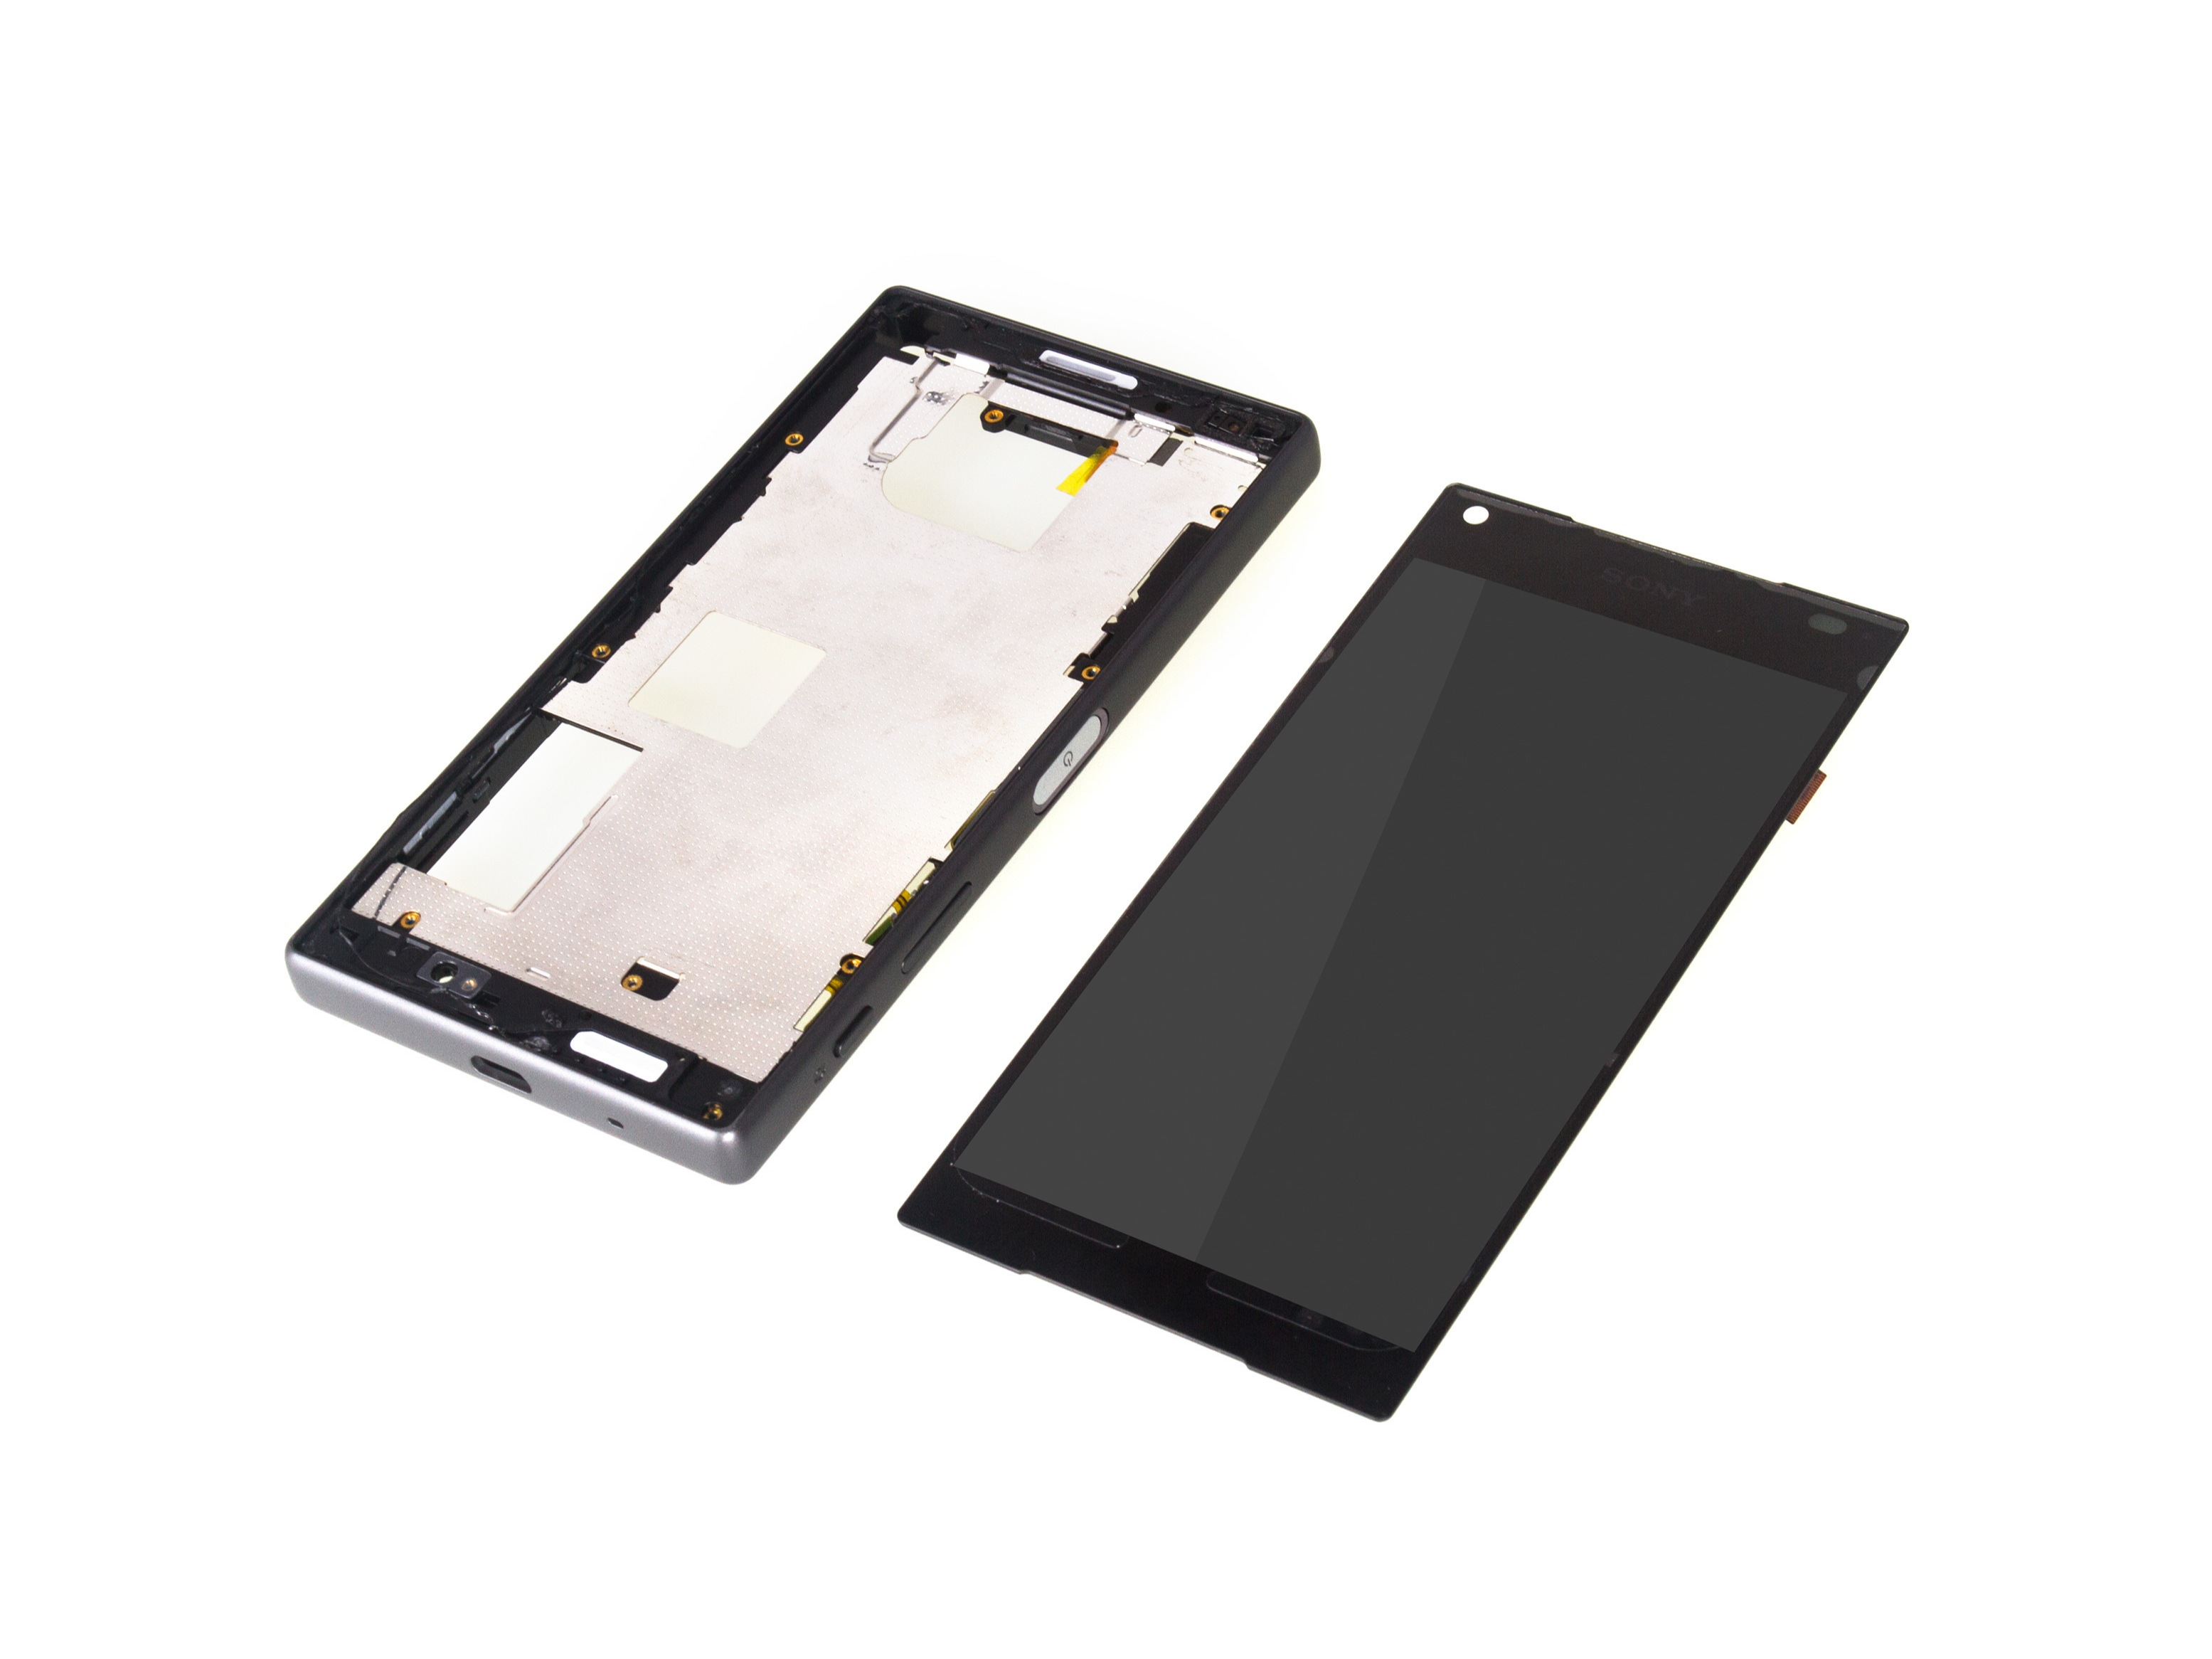 sony xperia z5 compact lcd screen assembly replacement. Black Bedroom Furniture Sets. Home Design Ideas